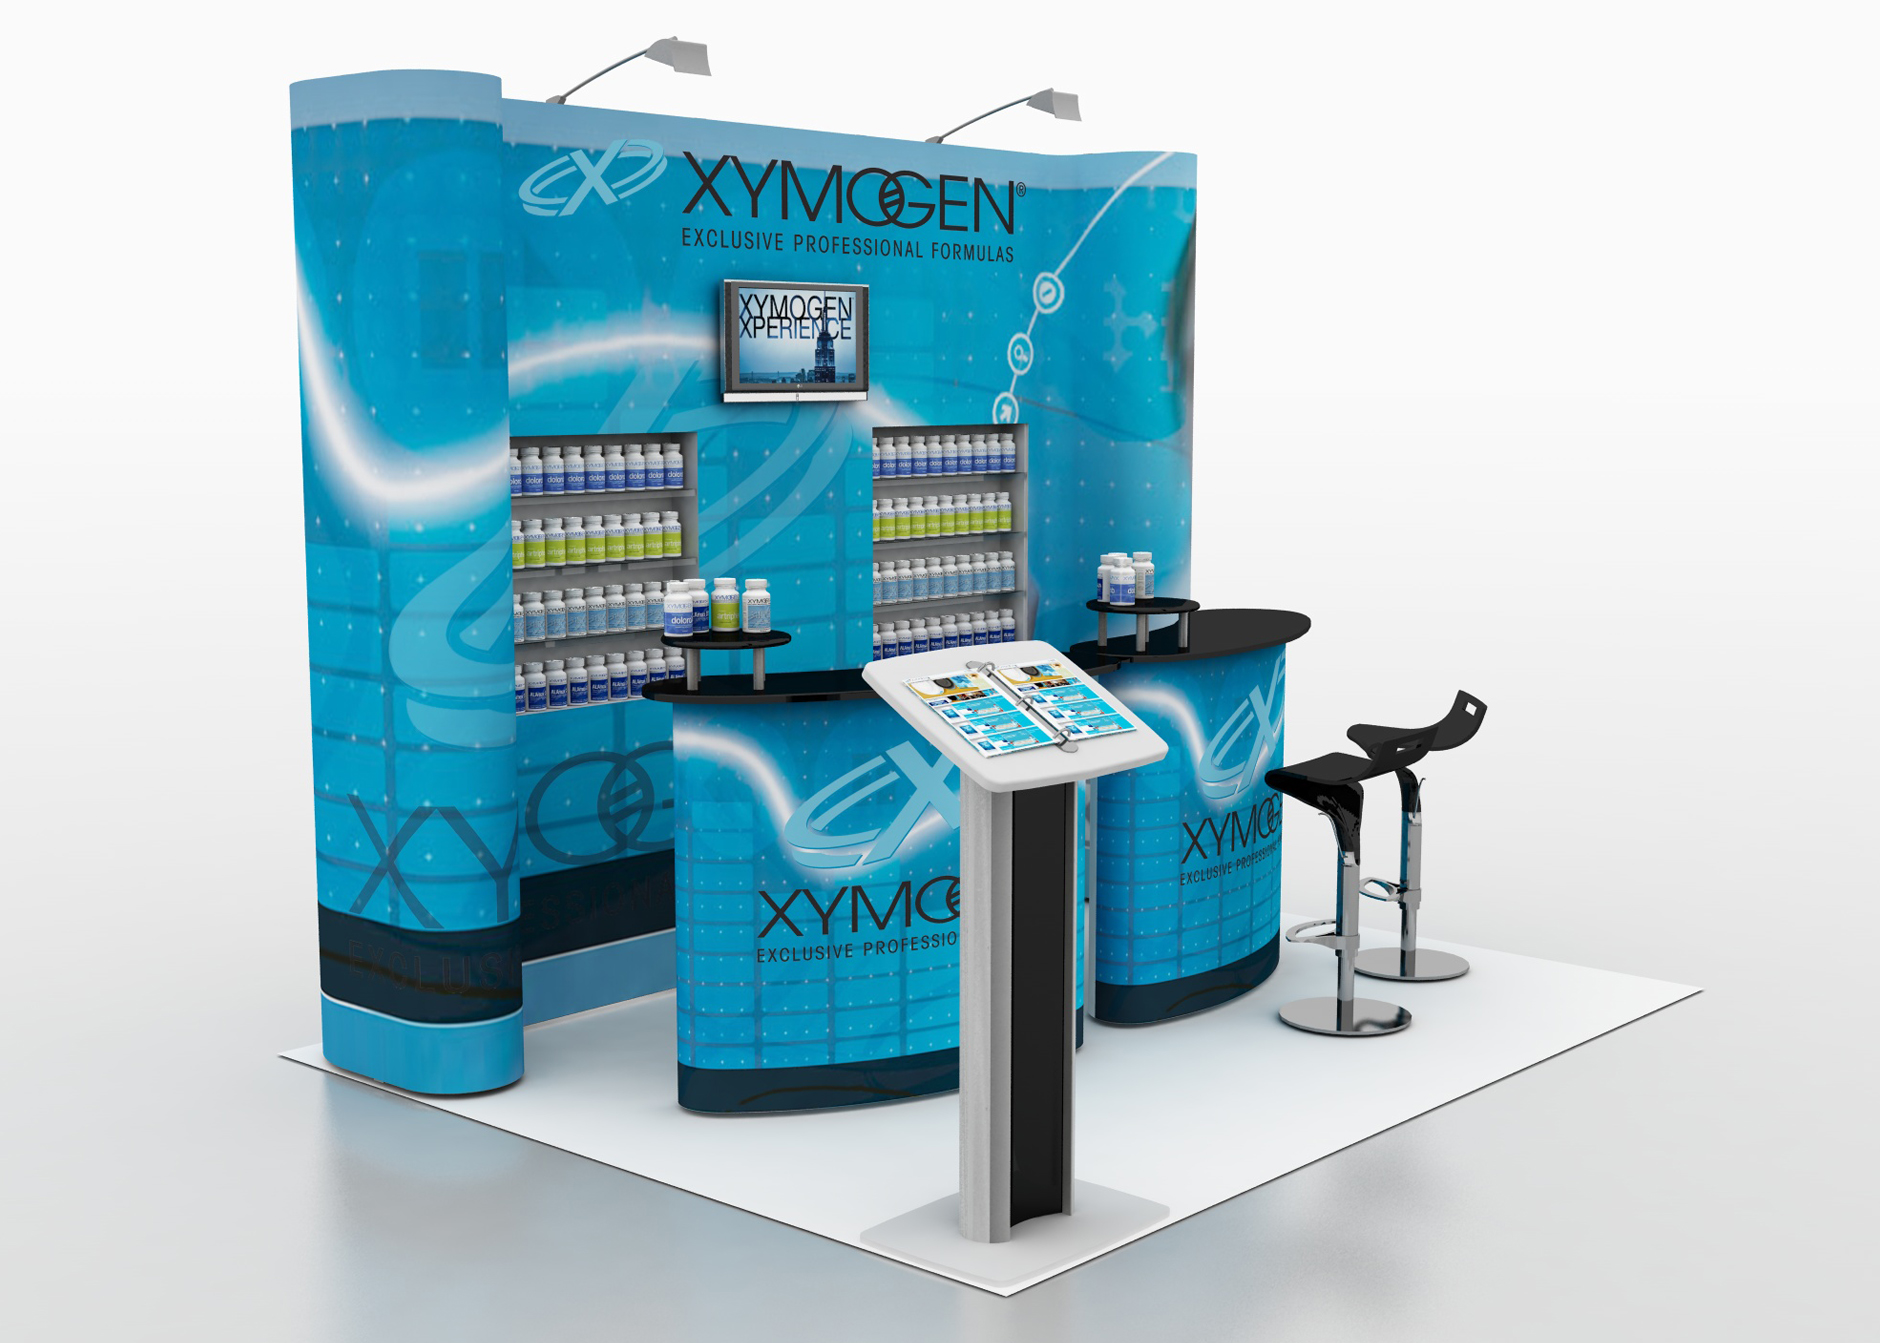 Trade Show Booth Graphic Design : A comprehensive guide to graphic design for trade show displays